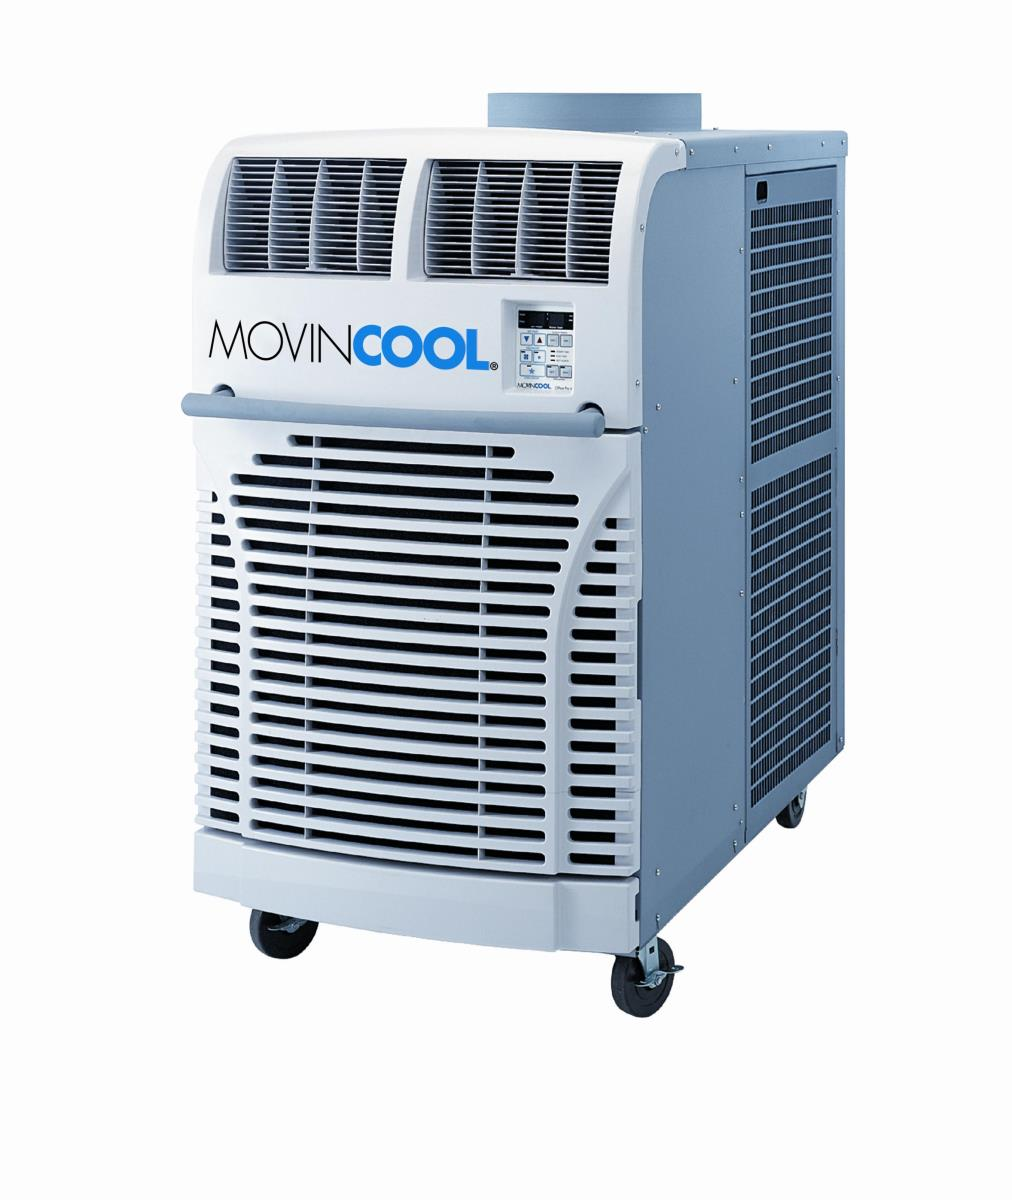 Advantages of a portable air conditioner